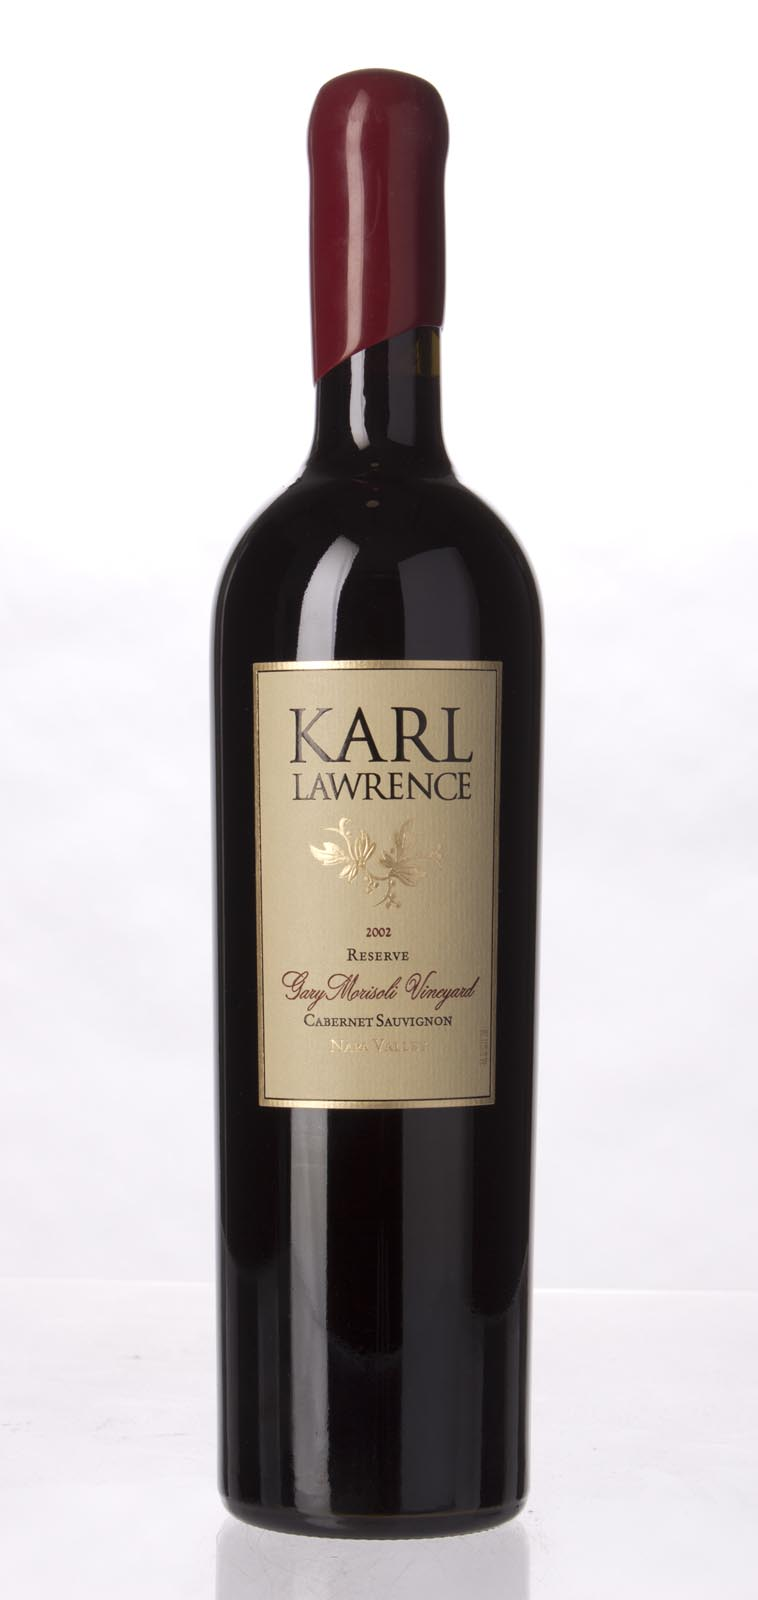 Karl Lawrence Cabernet Sauvignon Reserve Gary Morisoli Vineyard 2002, 750mL () from The BPW - Merchants of rare and fine wines.